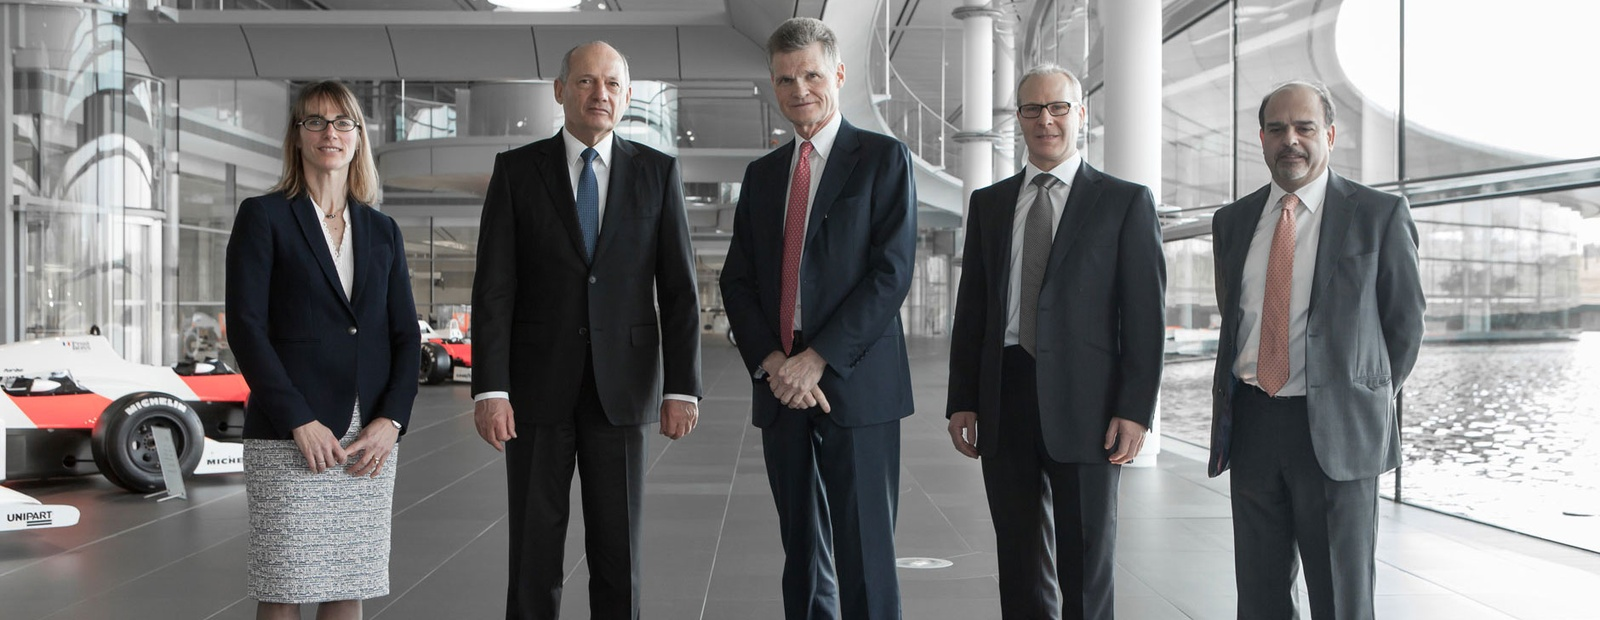 McLAREN APPLIED TECHNOLOGIES PARTNERS WITH THE UNIVERSITY OF OXFORD TO OPTIMISE PATIENT CARE